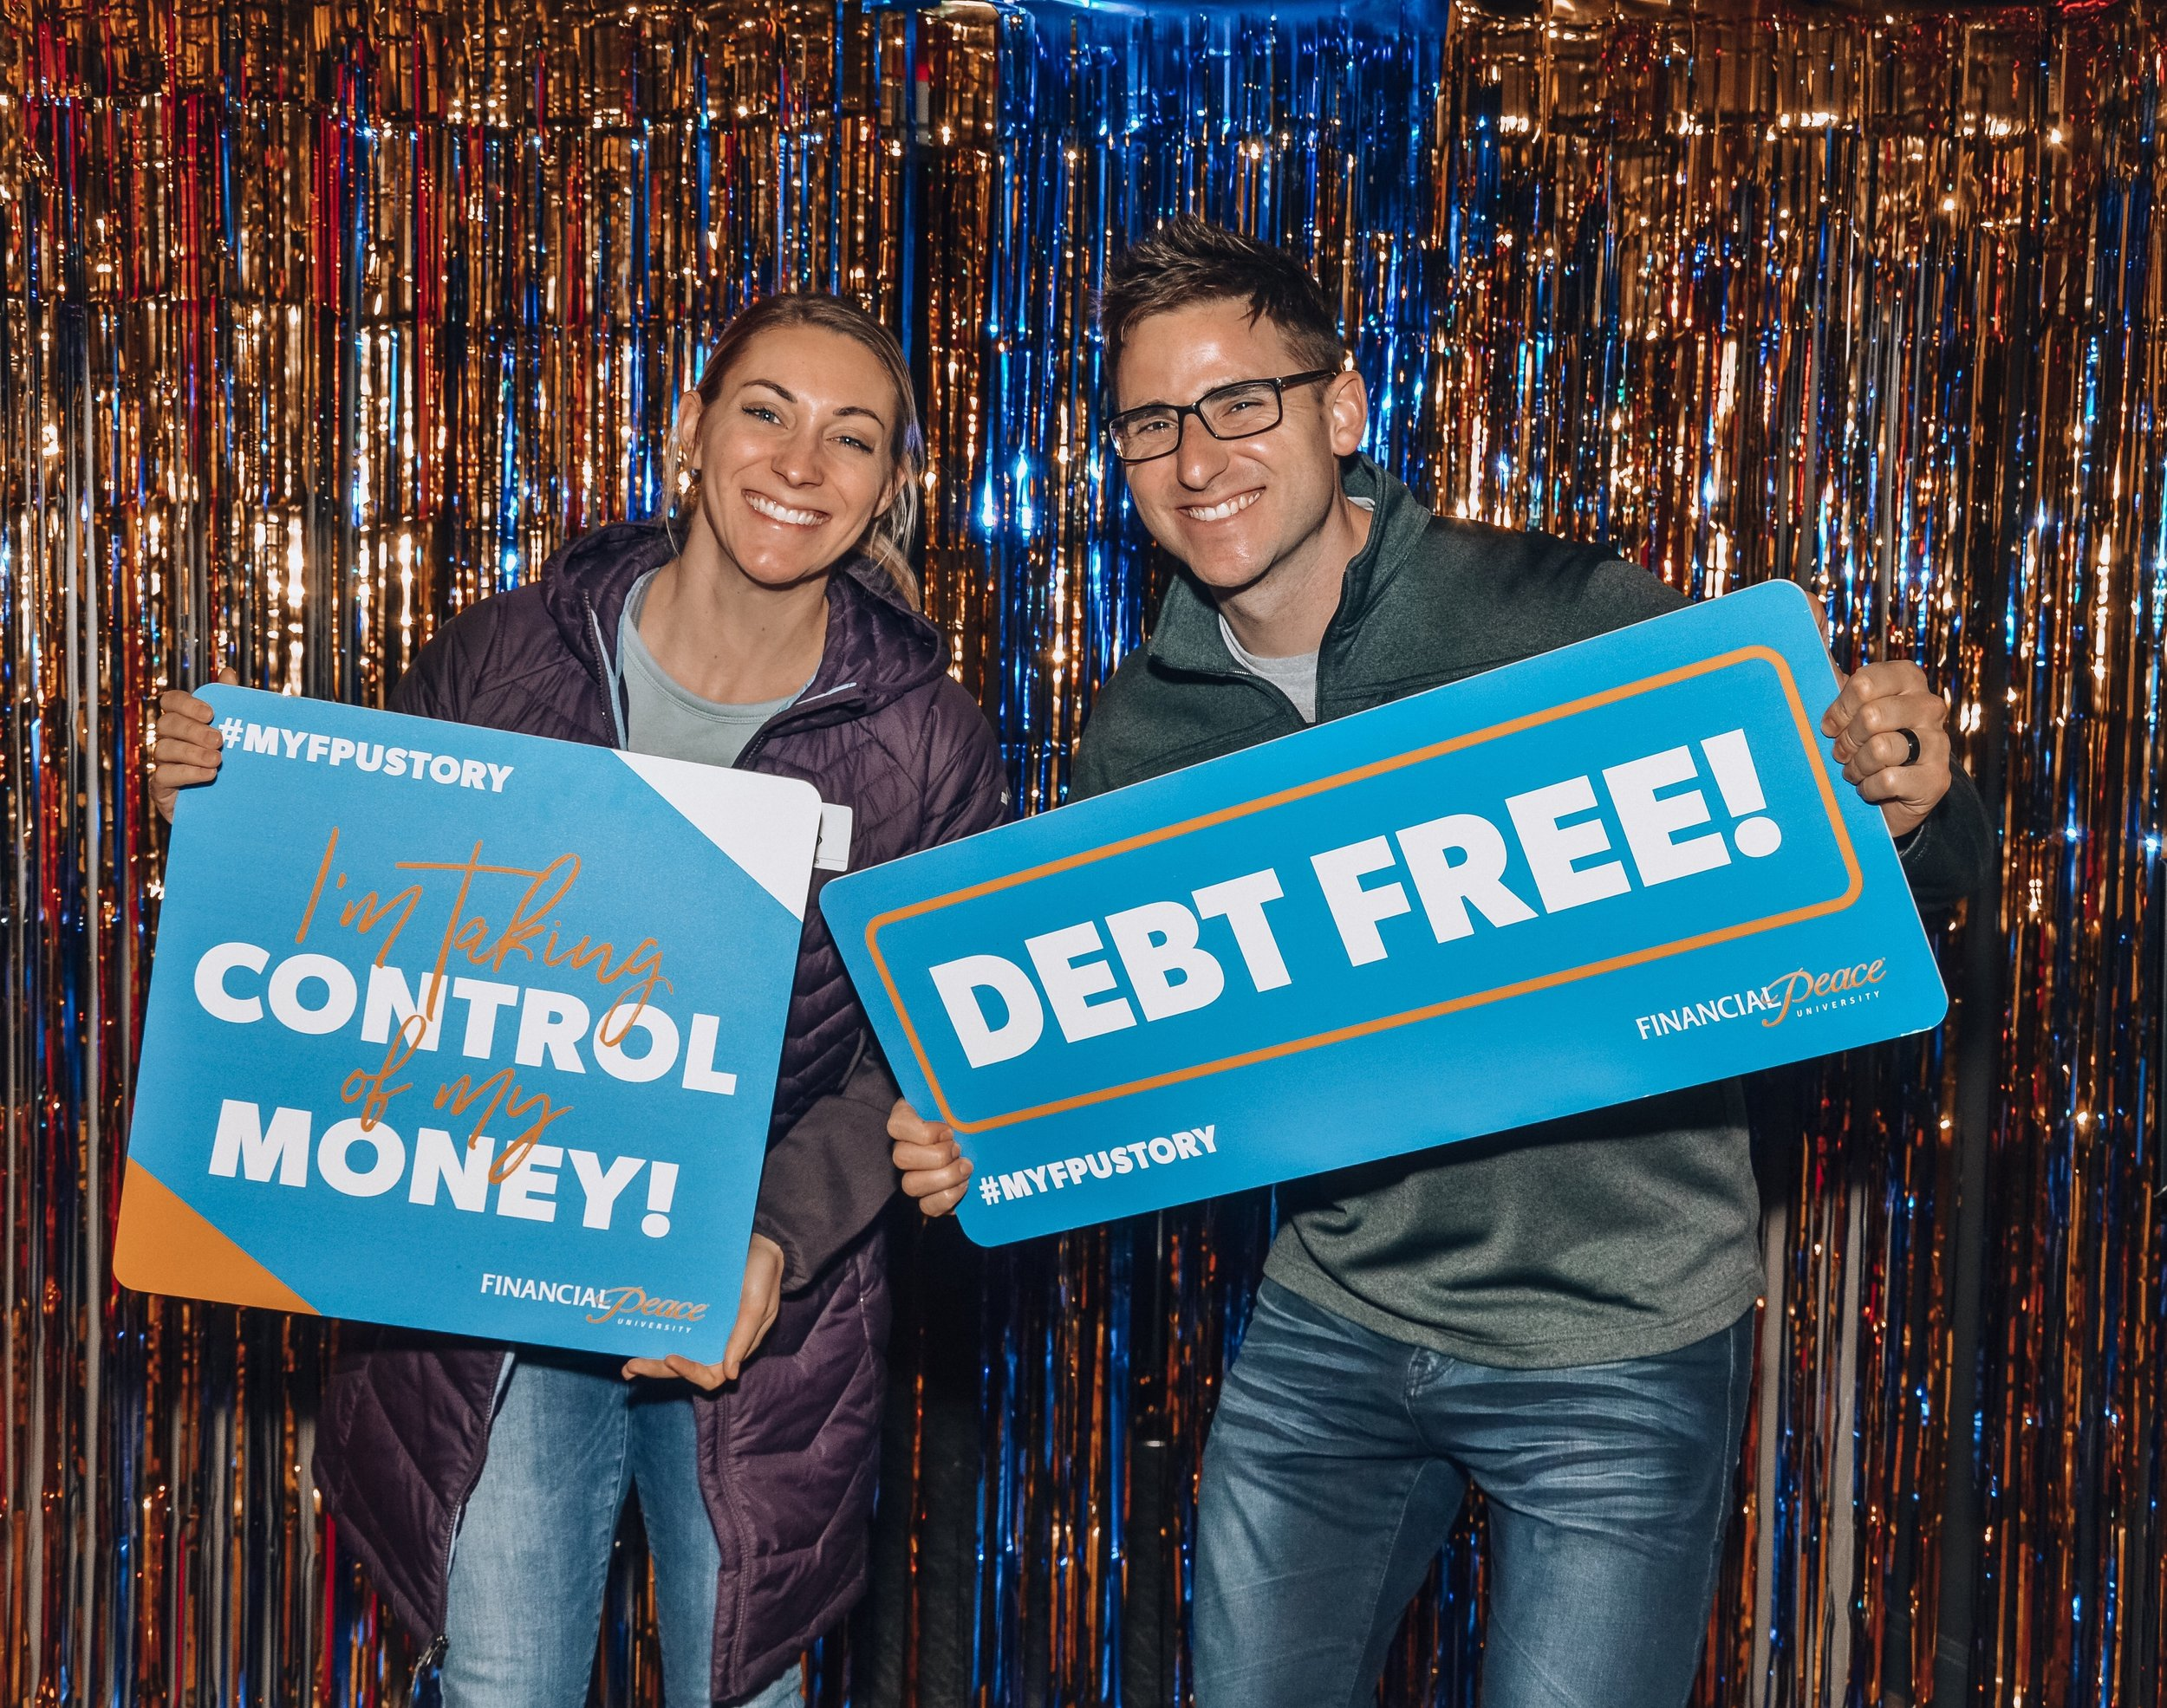 debt free at 27, Financial Peace University